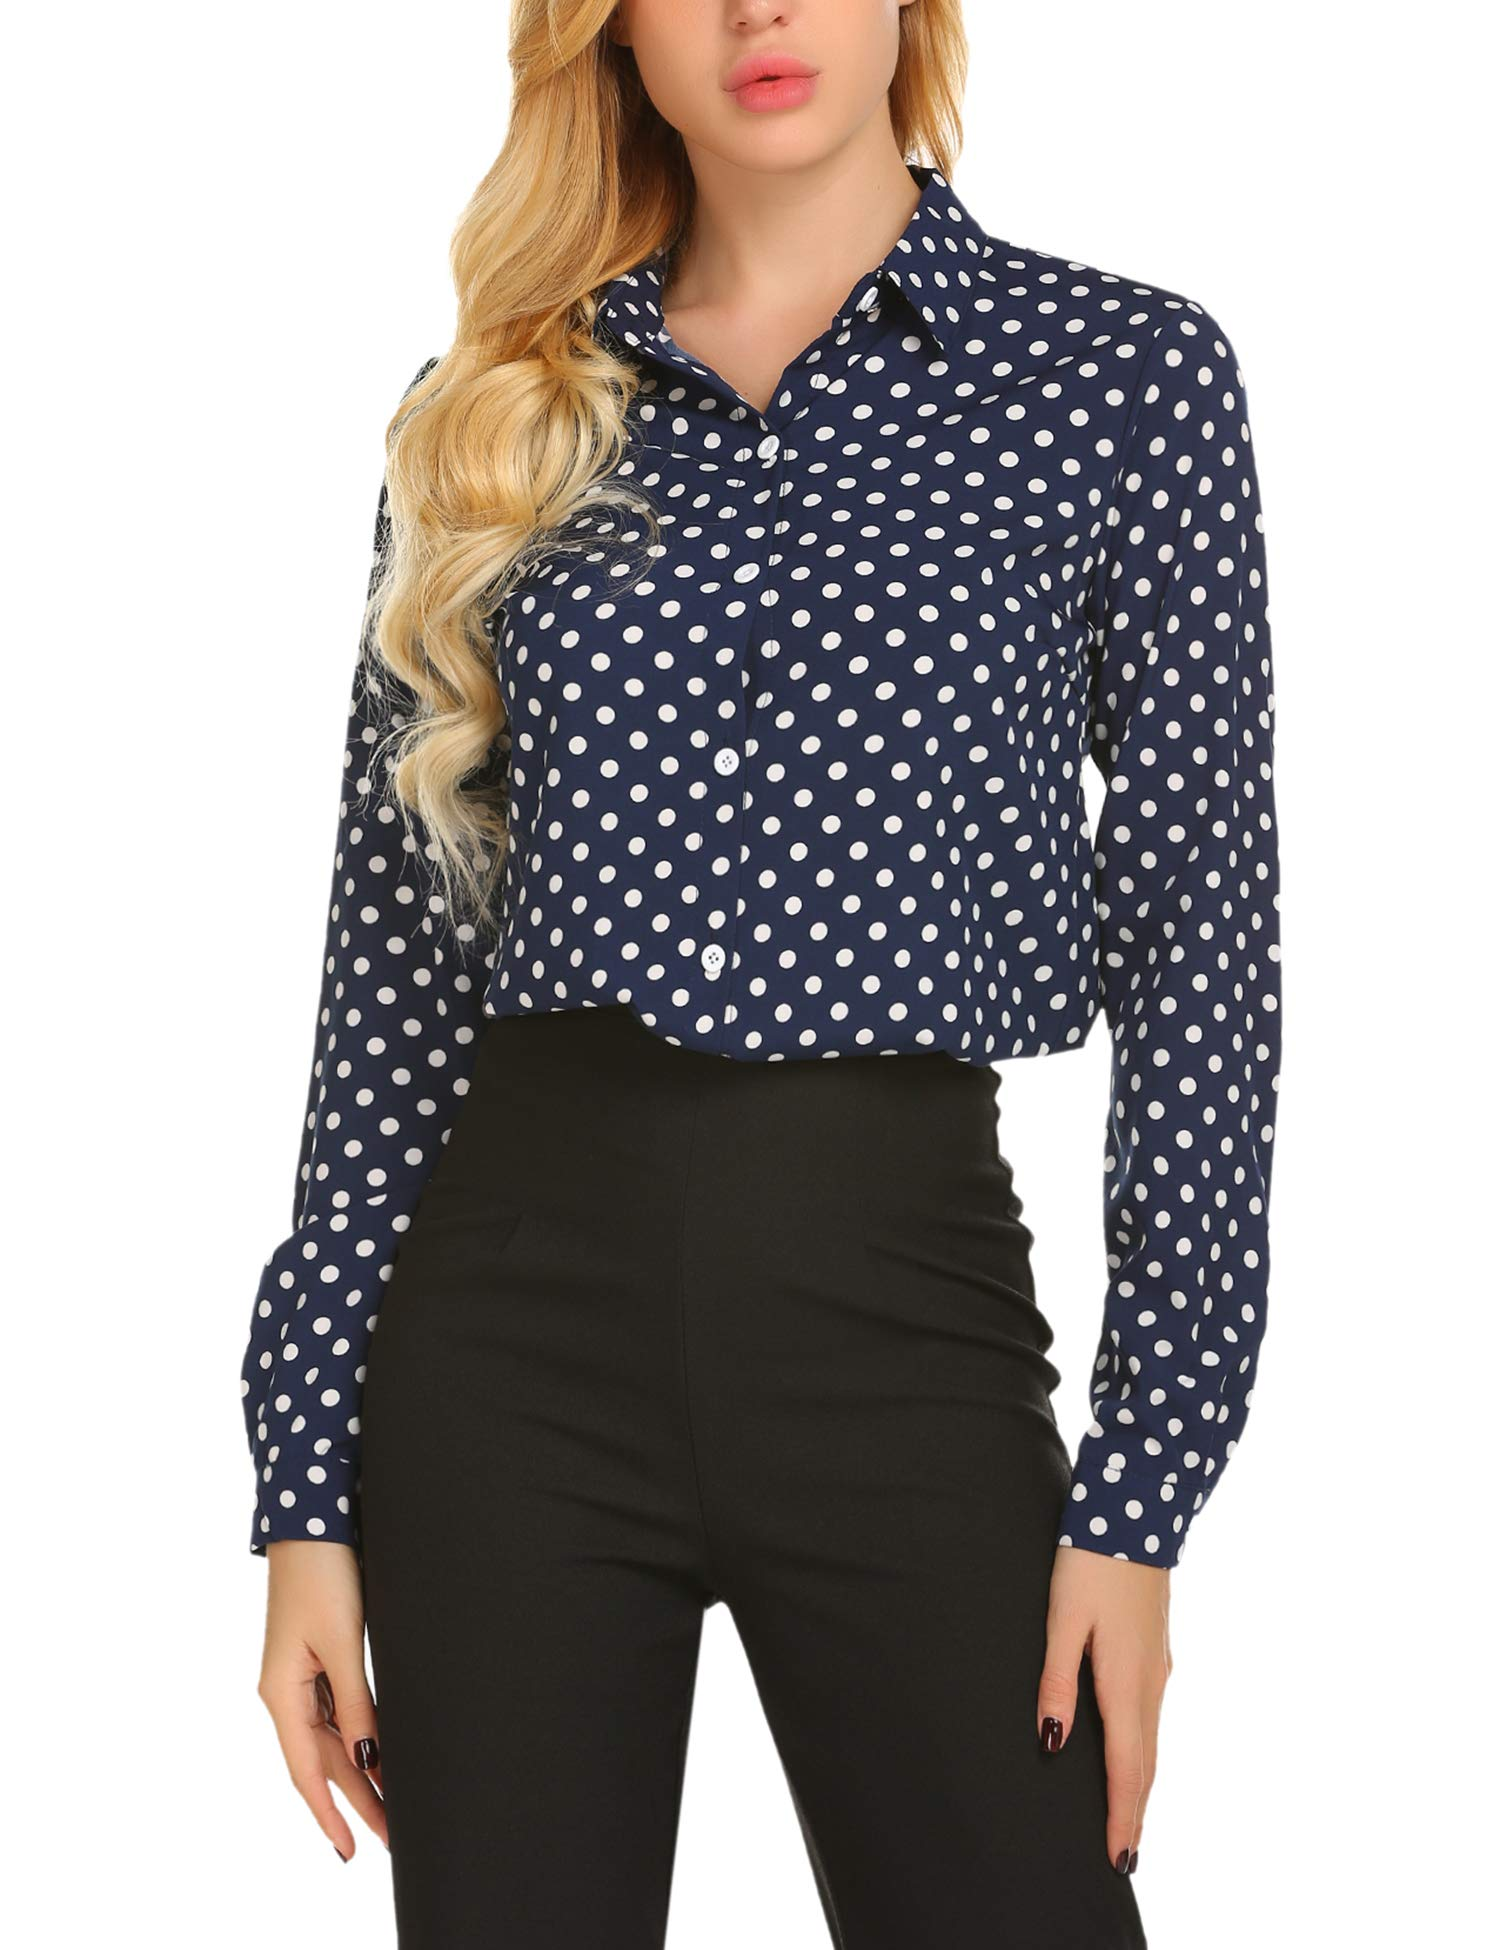 SE MIU Women's Chiffon Long Sleeve Polka Dot Office Button Down Blouse Shirt Tops